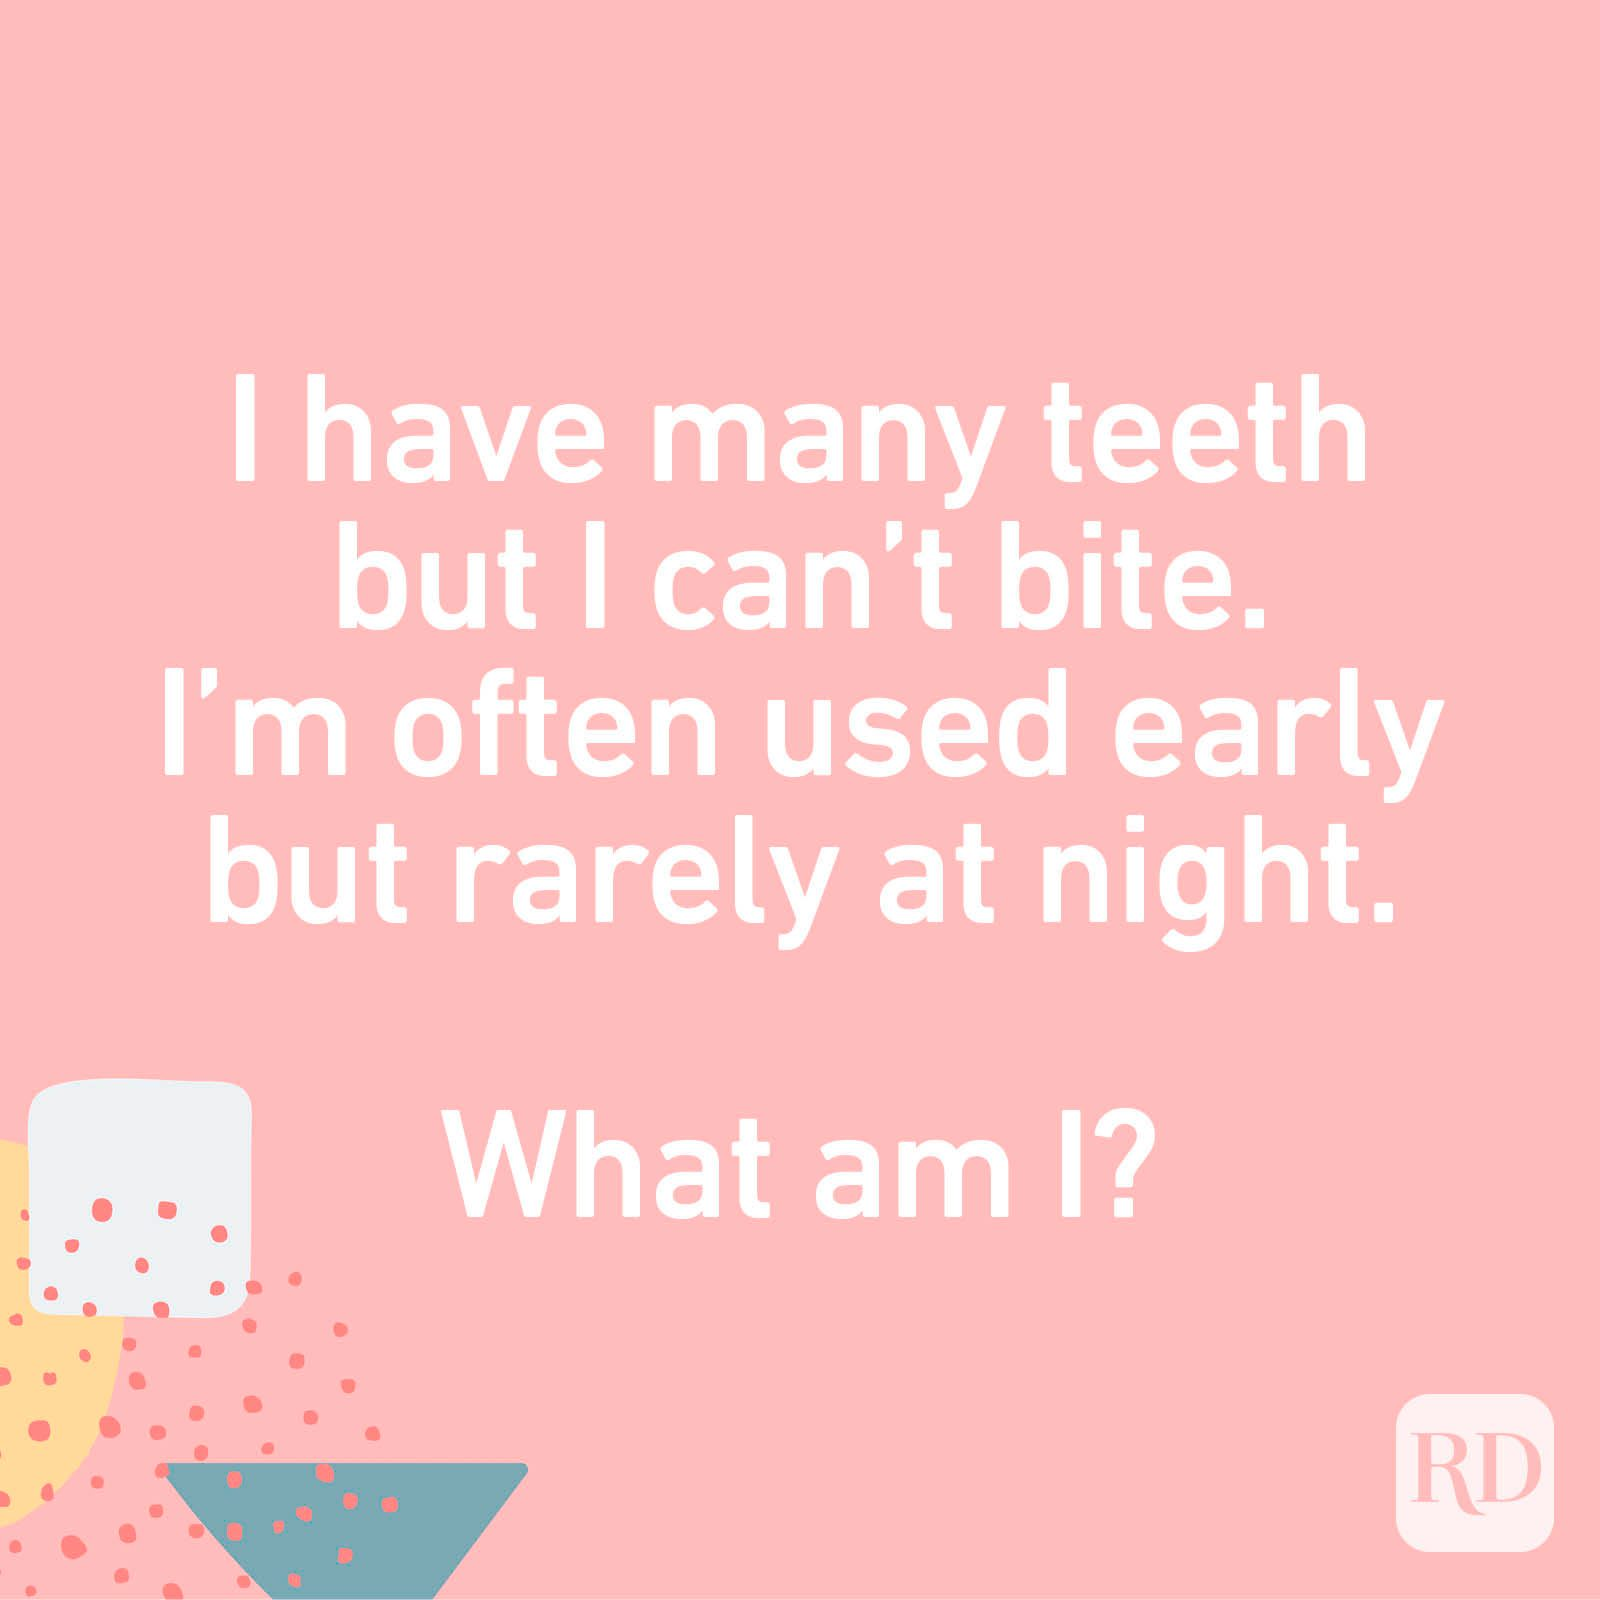 I have many teeth but I can't bite. I'm often used early but rarely at night. What am I?